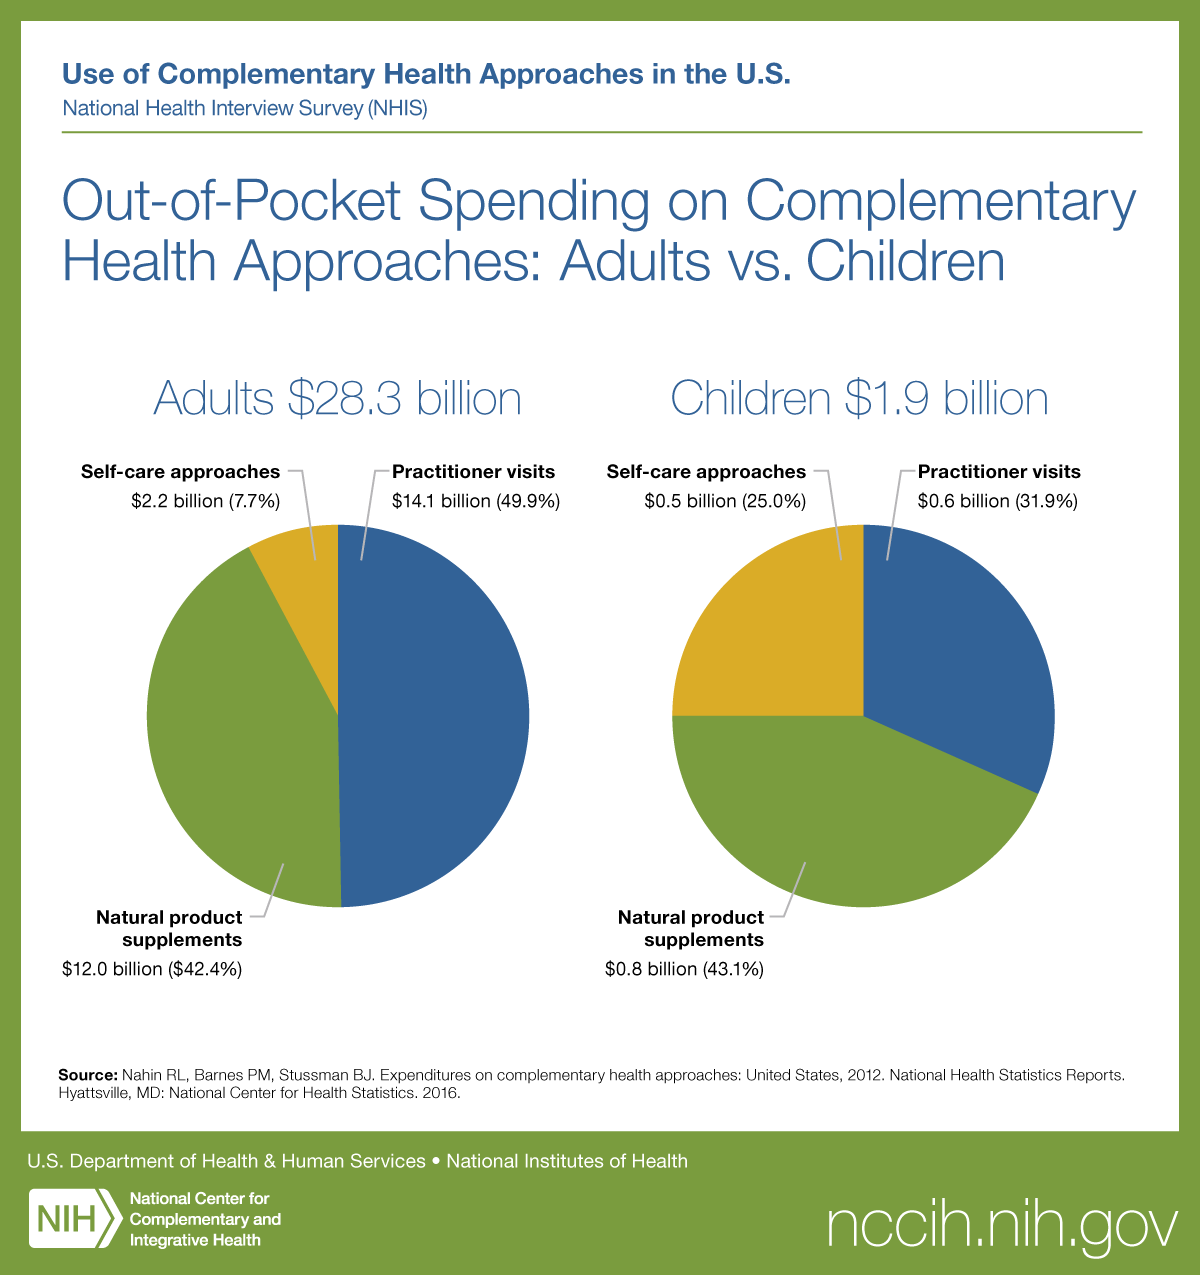 Out-of-Pocket Spending on Complementary Health Approaches: Adults vs. Children